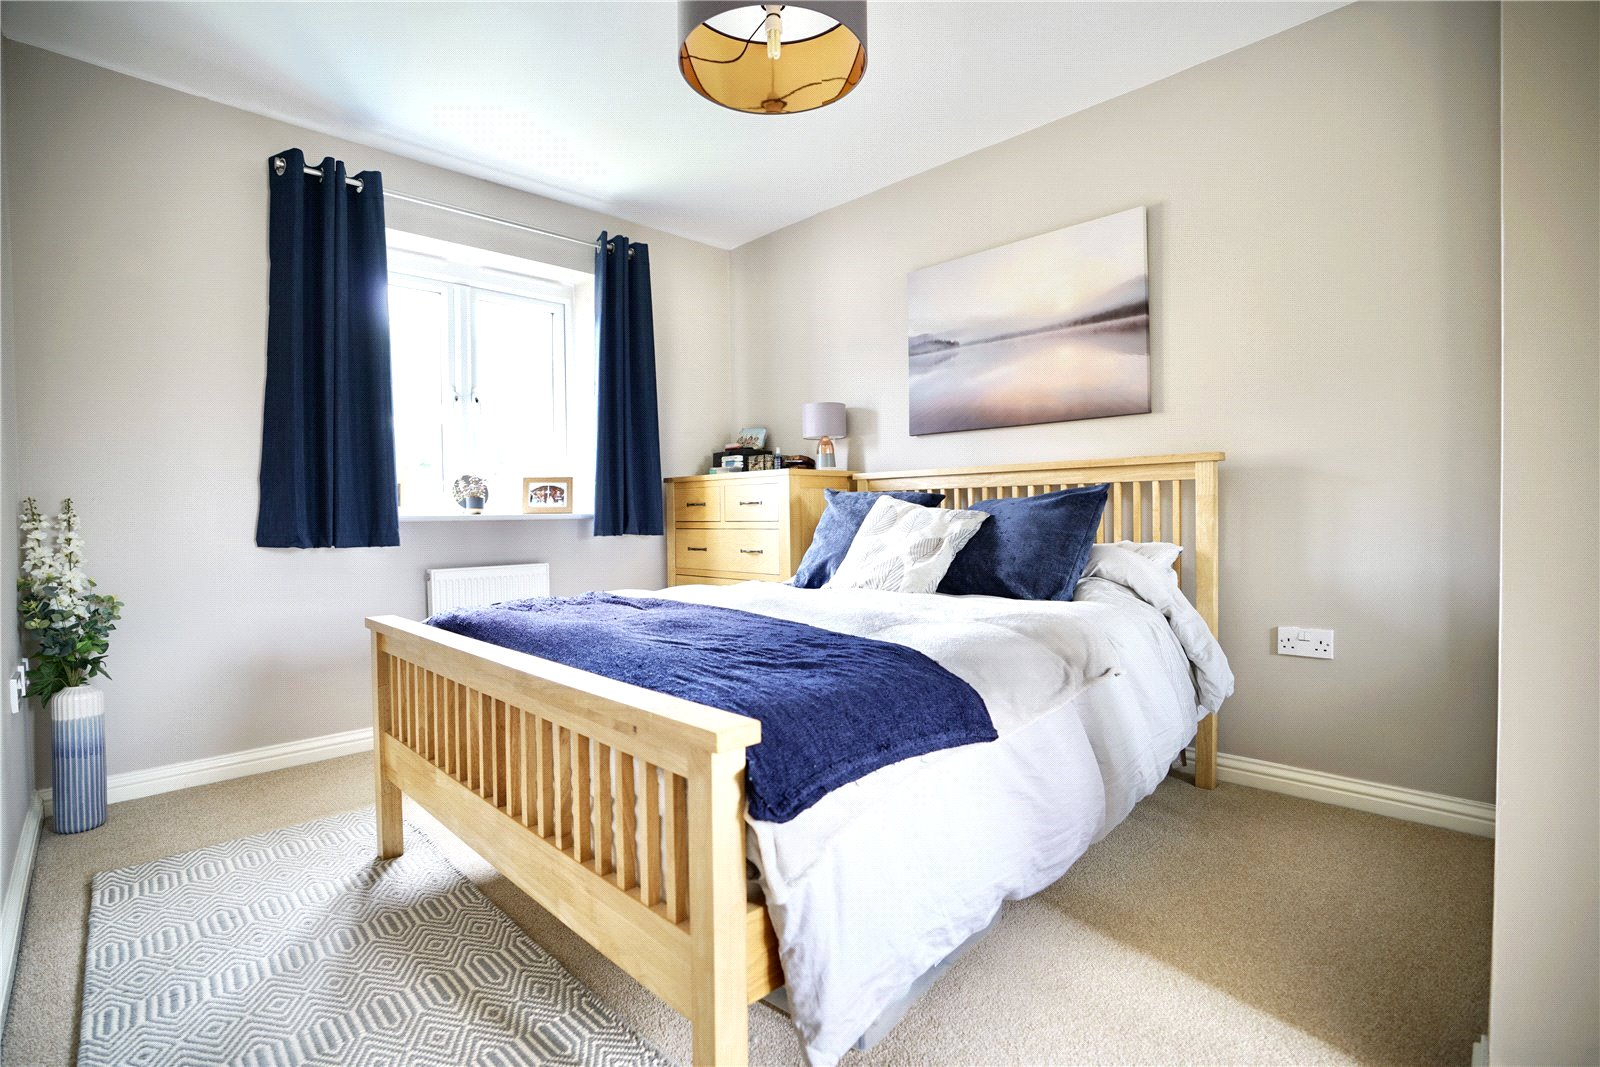 3 bed house for sale in St. Ives, PE27 5DL  - Property Image 6